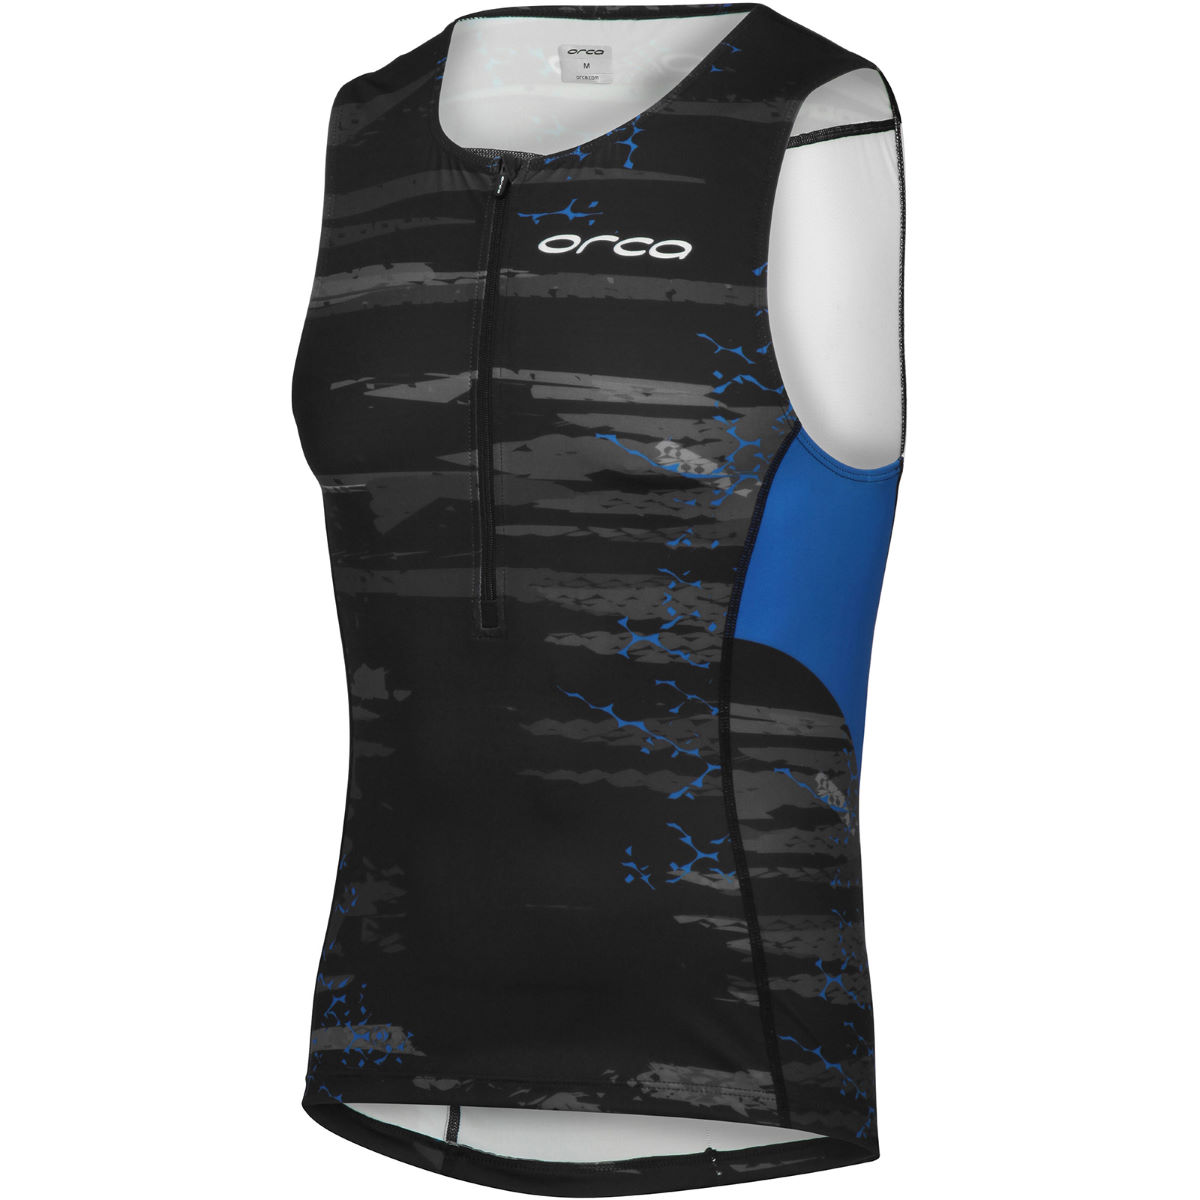 Maillot de triathlon Orca Tex-Abs (exclusivité Wiggle) - Extra Large